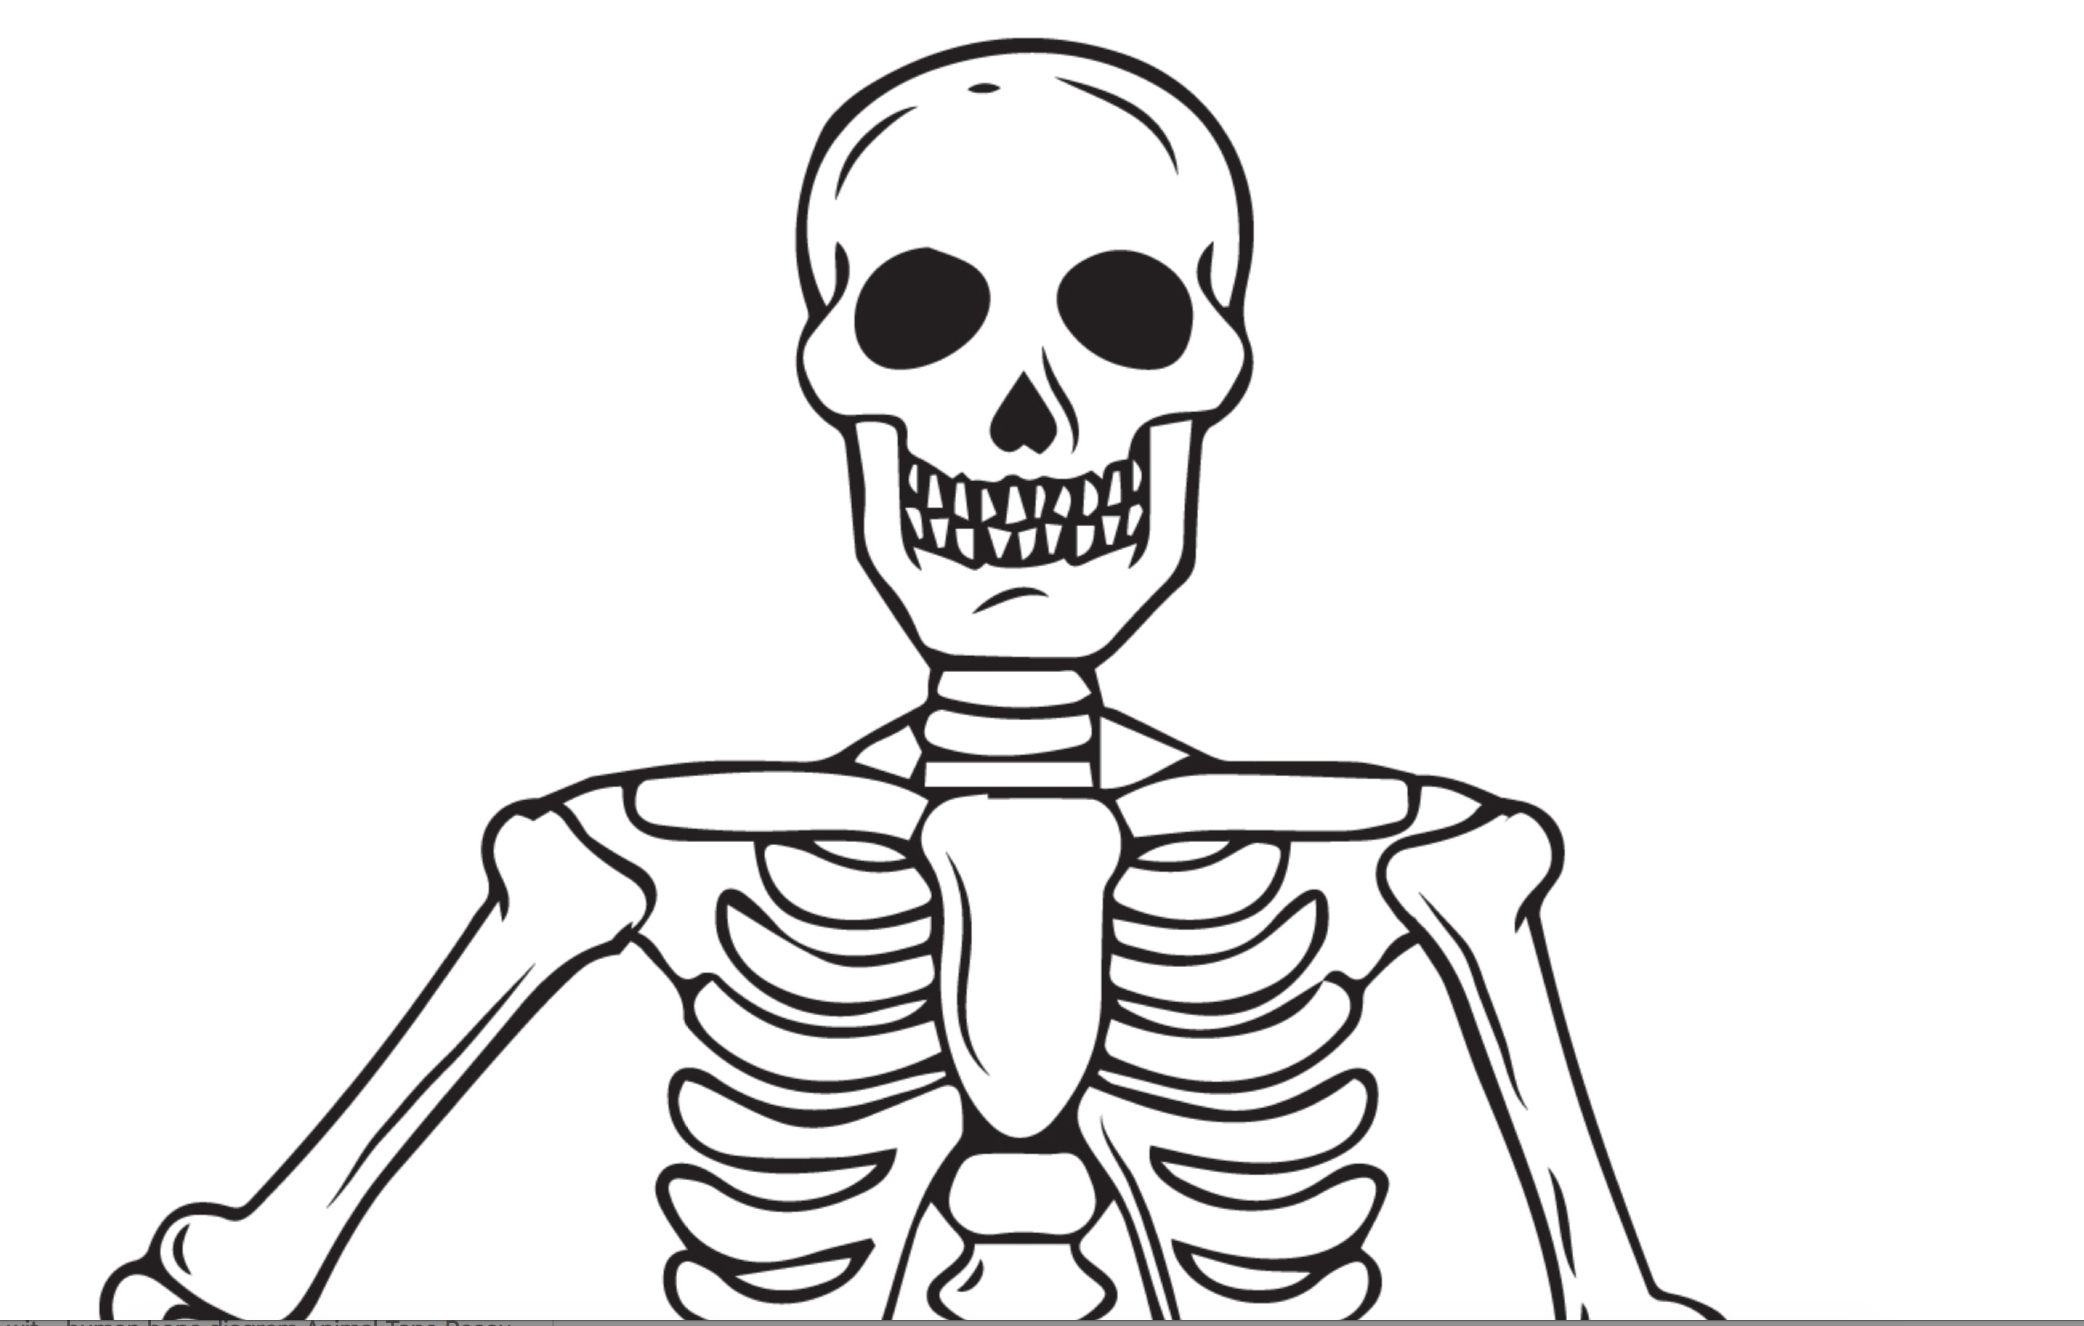 Printable Skeleton Coloring Page For Kids Halloween Coloring Pages Halloween Coloring Coloring Pages For Kids [ 1326 x 2084 Pixel ]